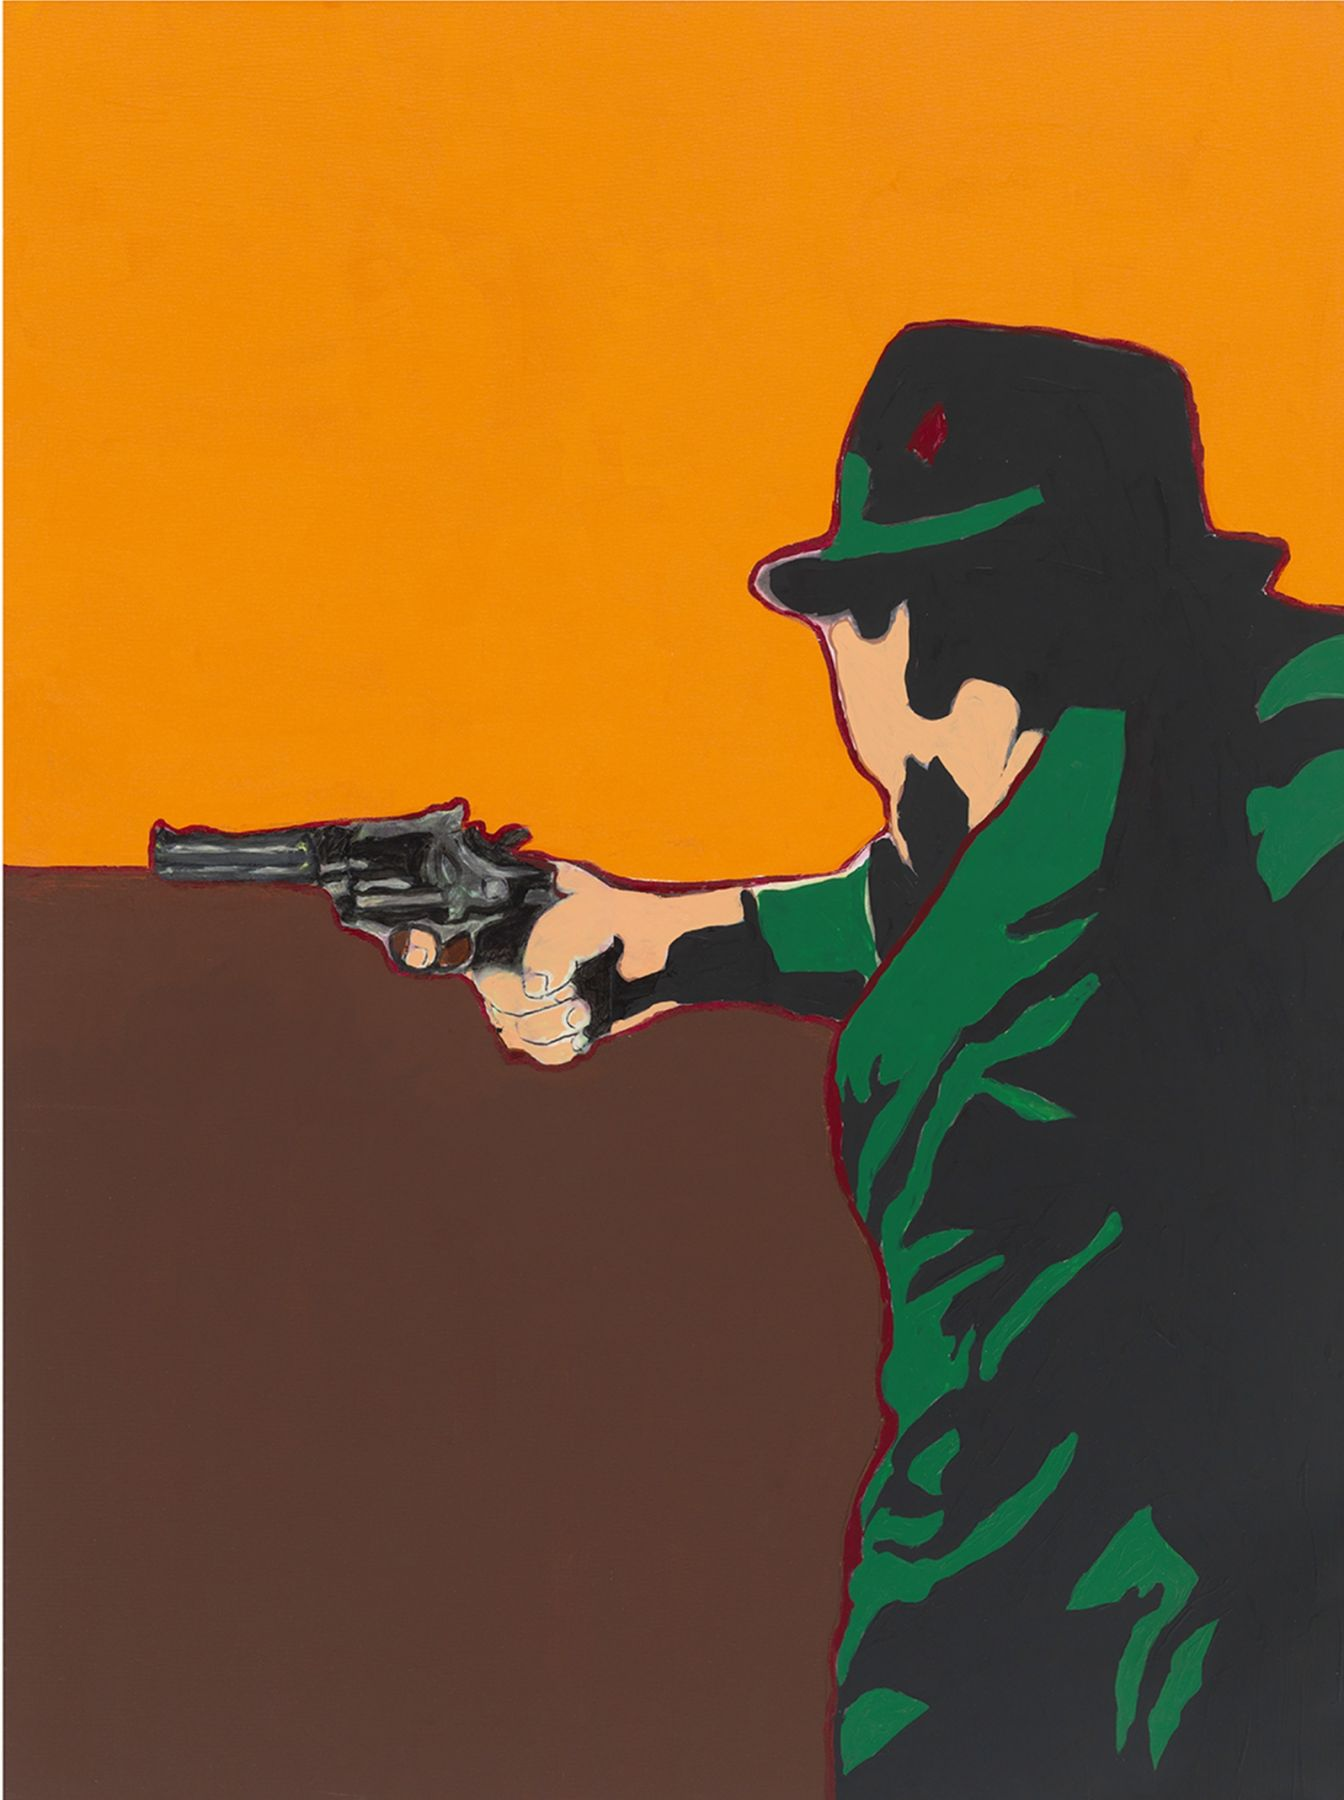 Shoot to Kill (Breaking News), 2014, Acrylic and paper collage on canvas